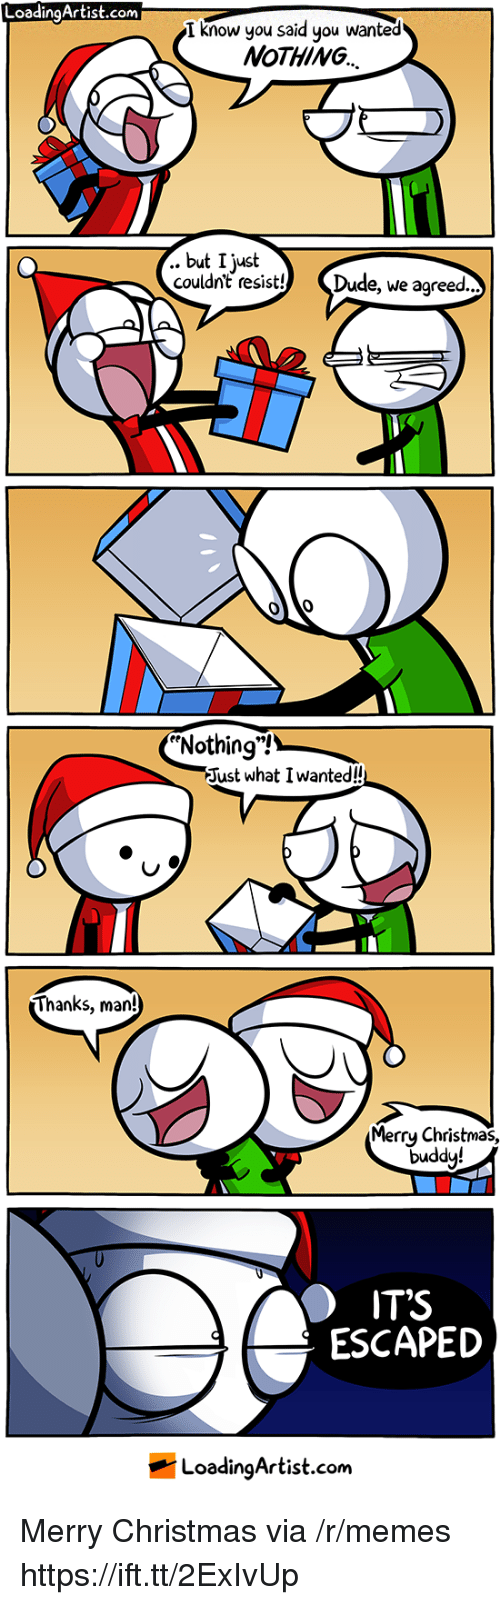 """Christmas, Dude, and Memes: LoadingArtist.com  I know you said you wanted  NoTHING  .. but I just  couldnt resist! Dude, we agreed..  Nothing""""!  Just what I wanted!  Thanks, man!  Merrų Christmas,  duddy!  IT'S  ESCAPED  LoadingArtist.com Merry Christmas via /r/memes https://ift.tt/2ExIvUp"""